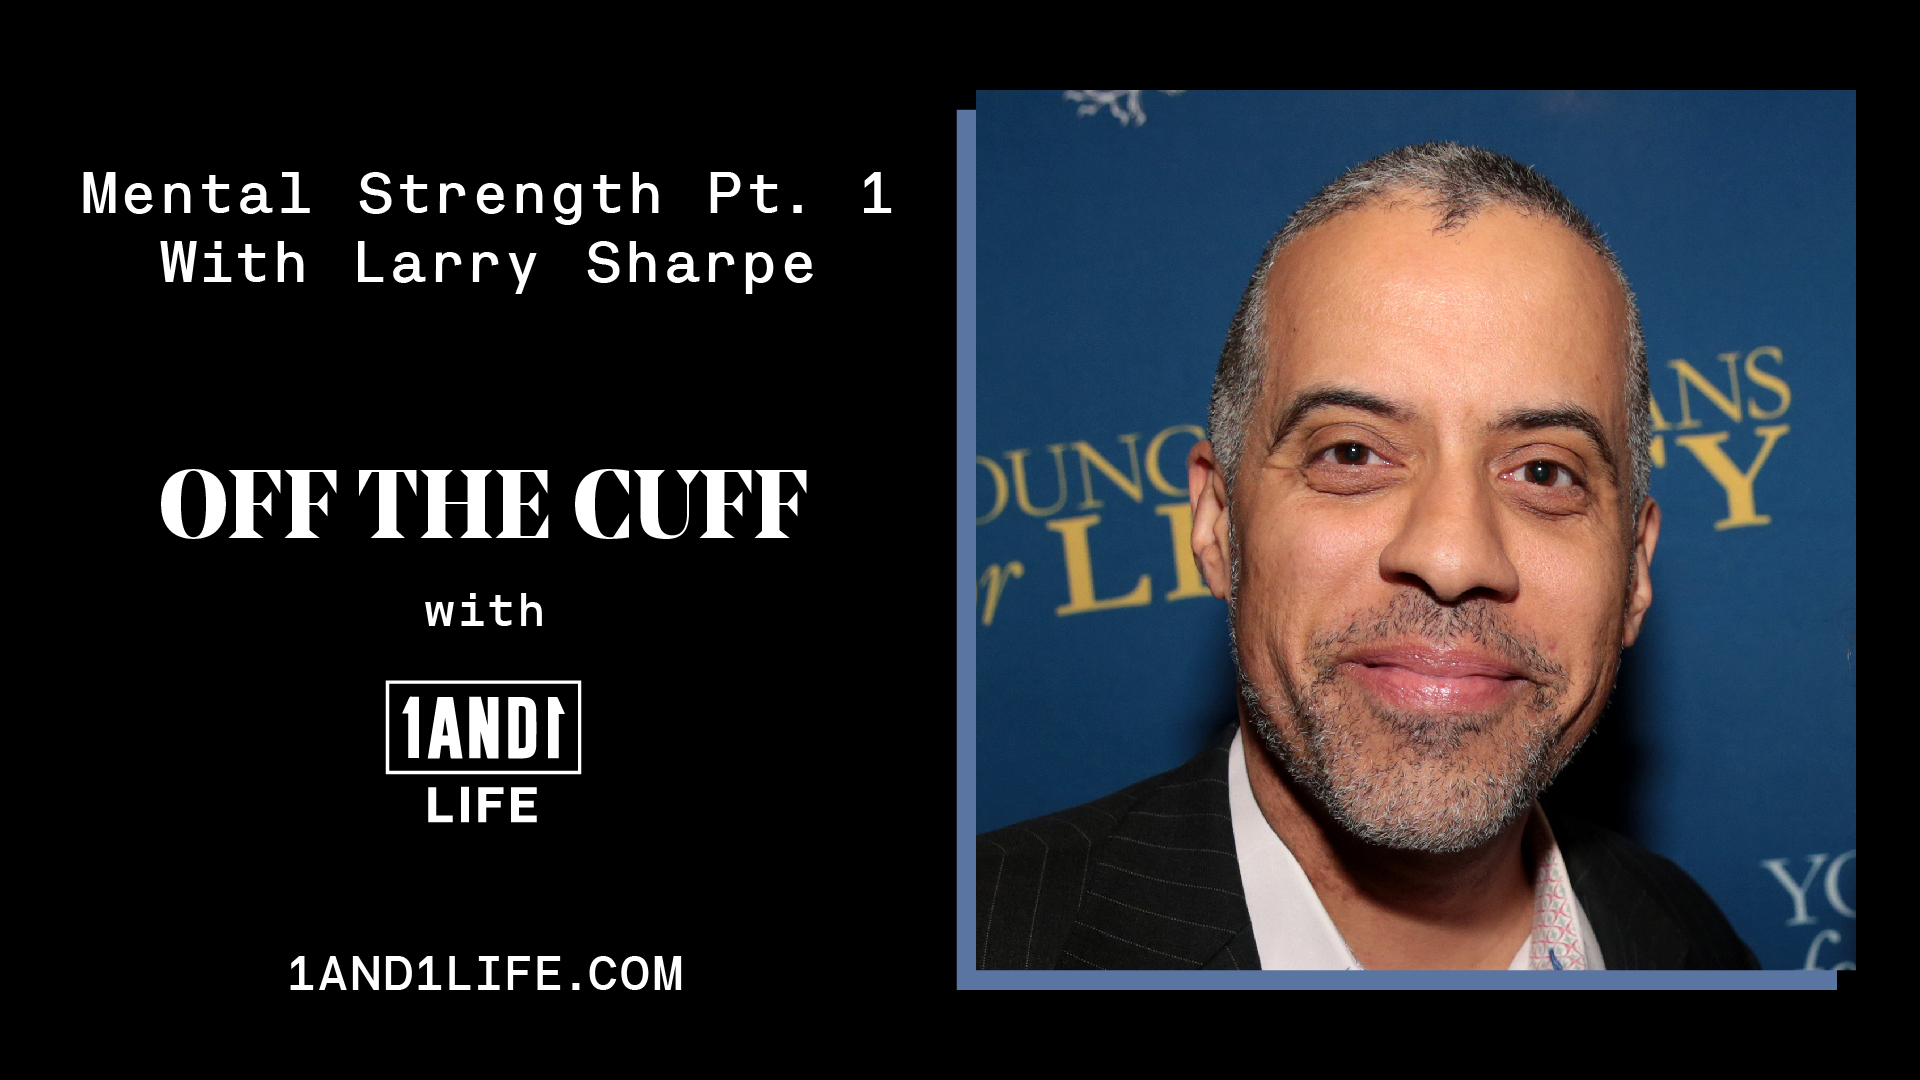 Larry Sharpe - Off The Cuff - 1AND1 Life